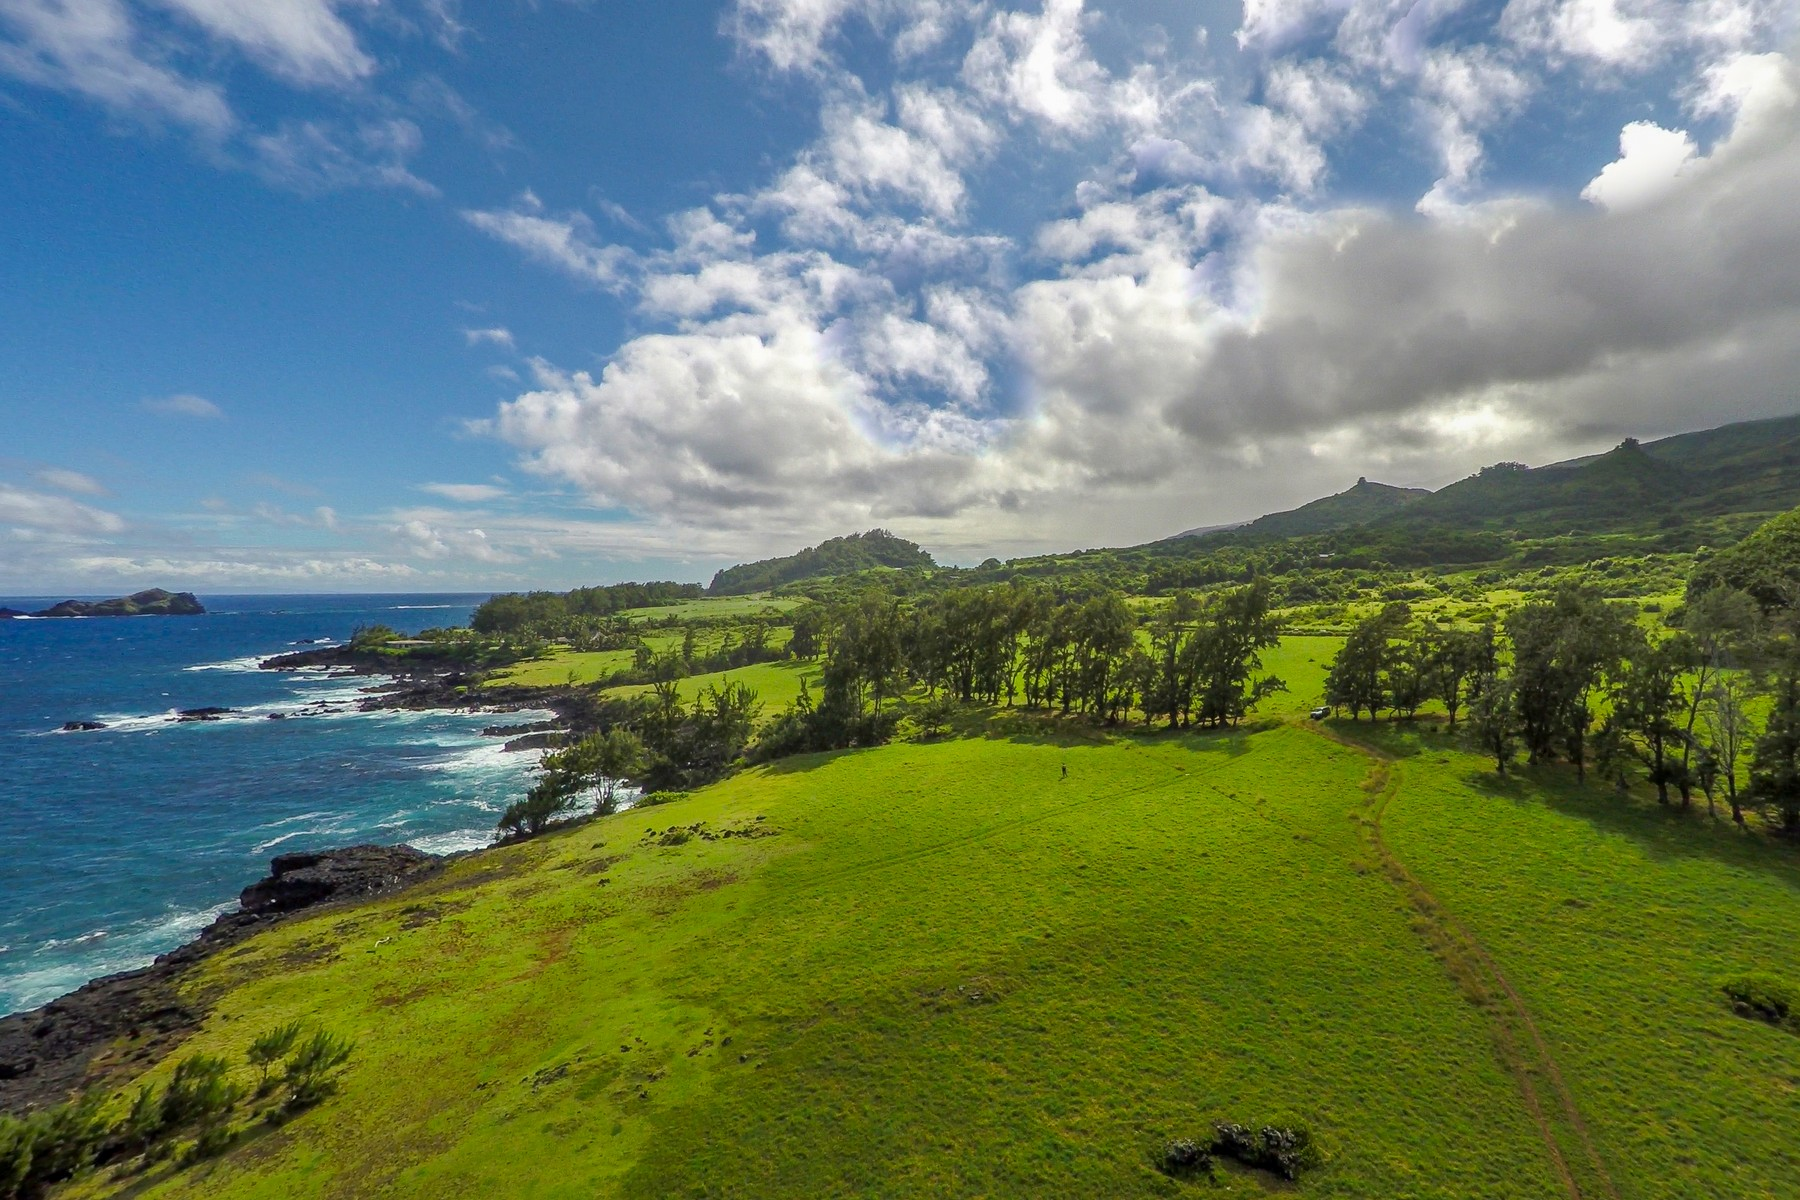 Terreno por un Venta en 81 Acre Oceanfront Hana, Maui Hana Highway, Sea Ranch Hana, Hawaii, 96713 Estados Unidos